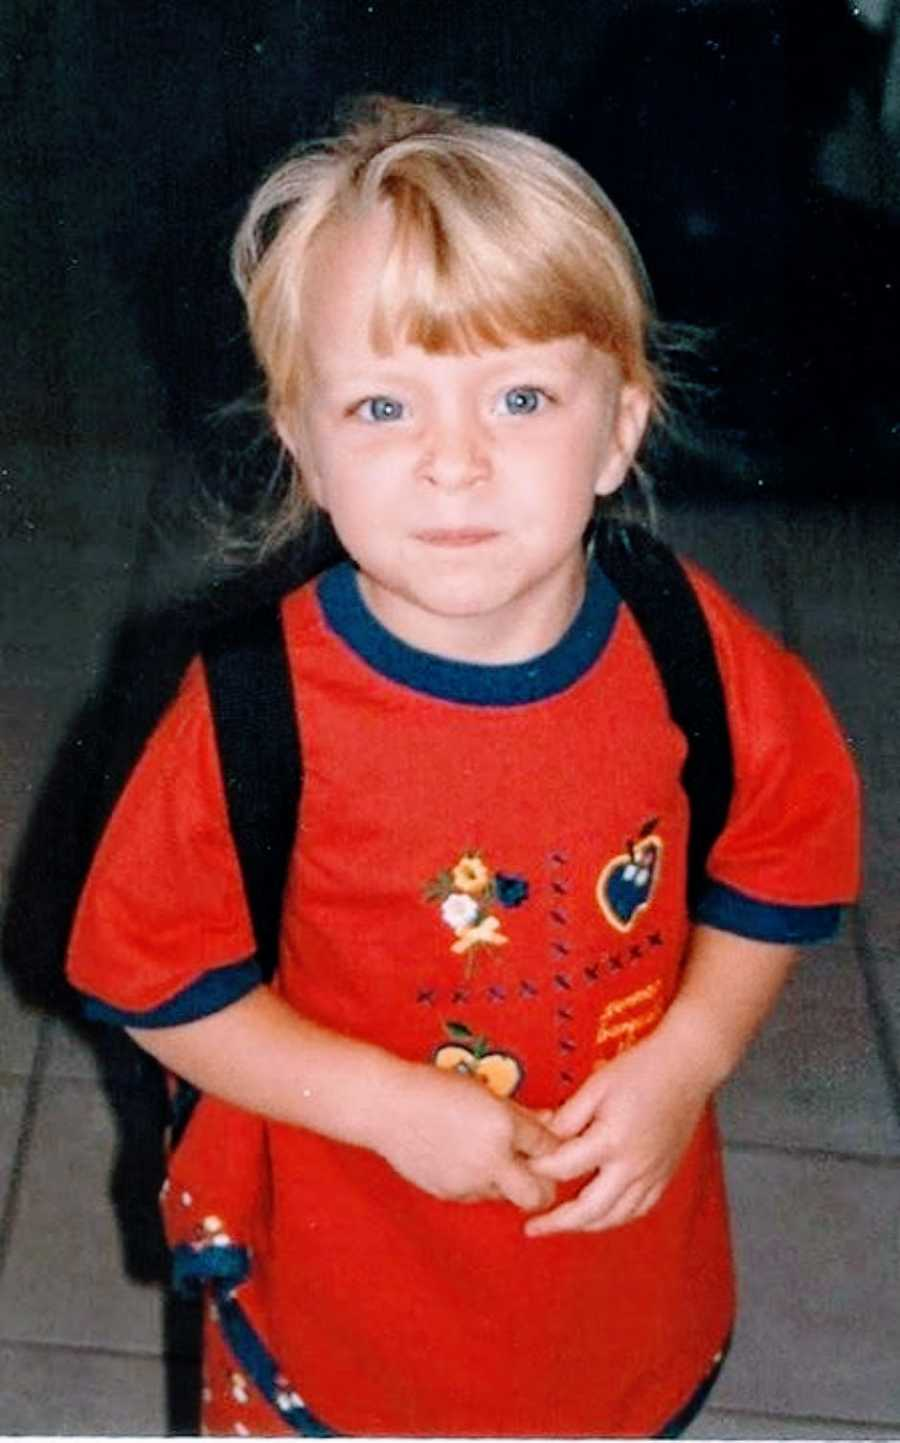 Young girl with blonde hair and blue eyes makes a silly tough face at the camera